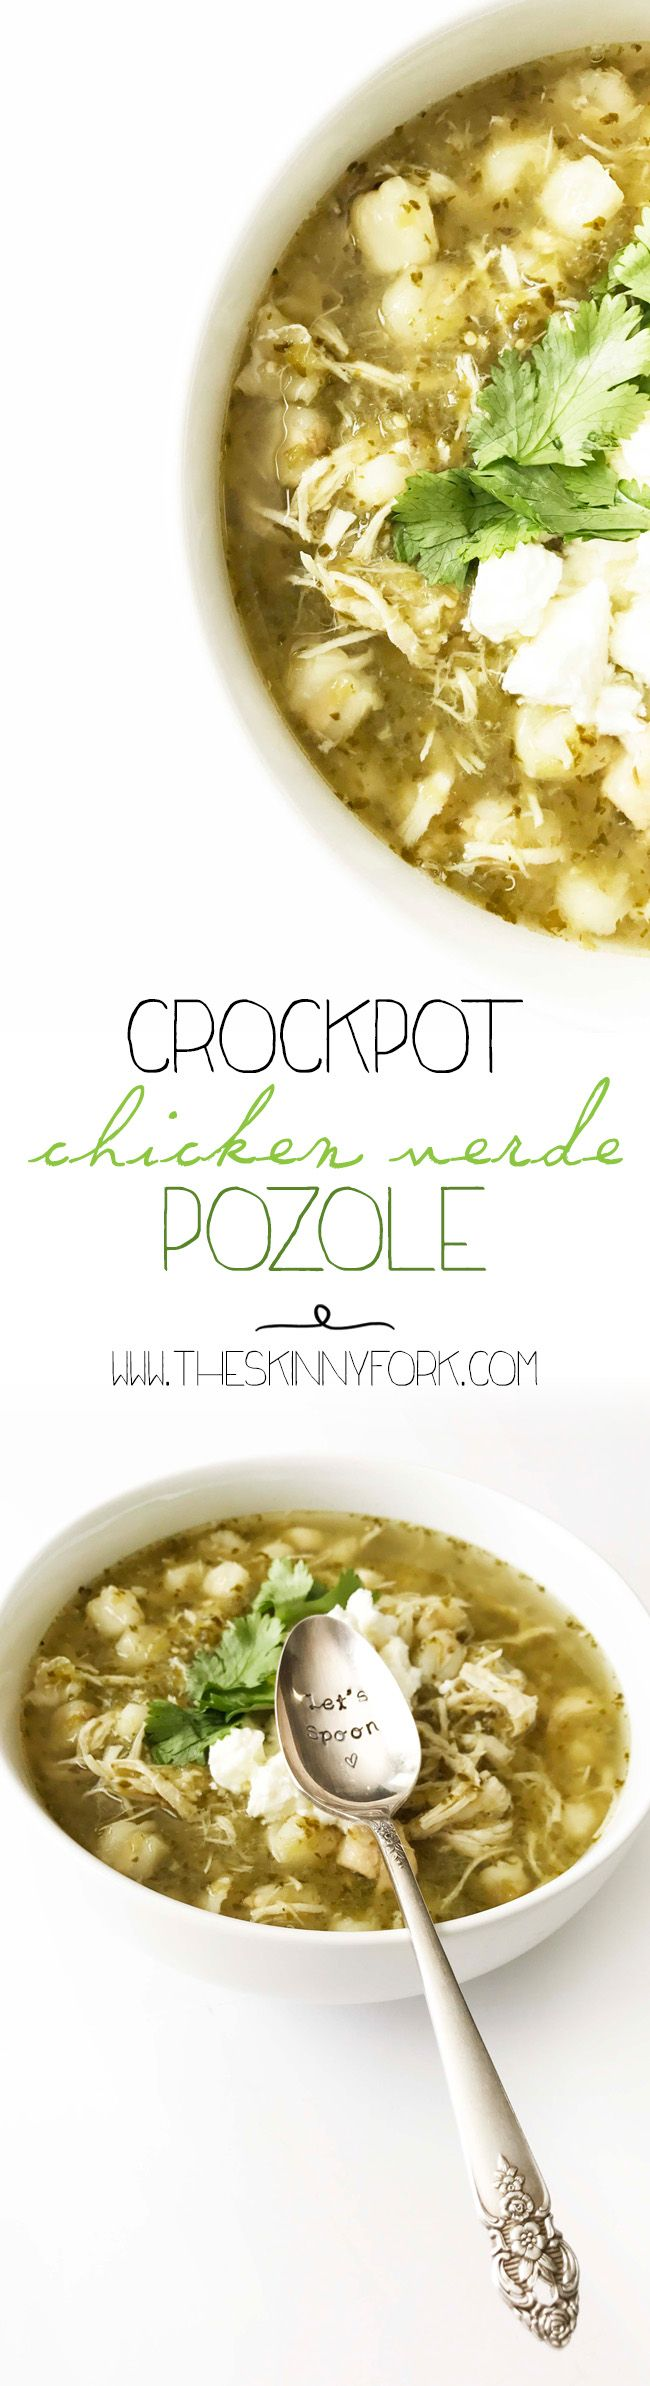 NEW New new Crockpot Chicken Verde Pozole! It's healthy. It's easy. And perfectly summer friendly. (I.E. - NO STOVE.)